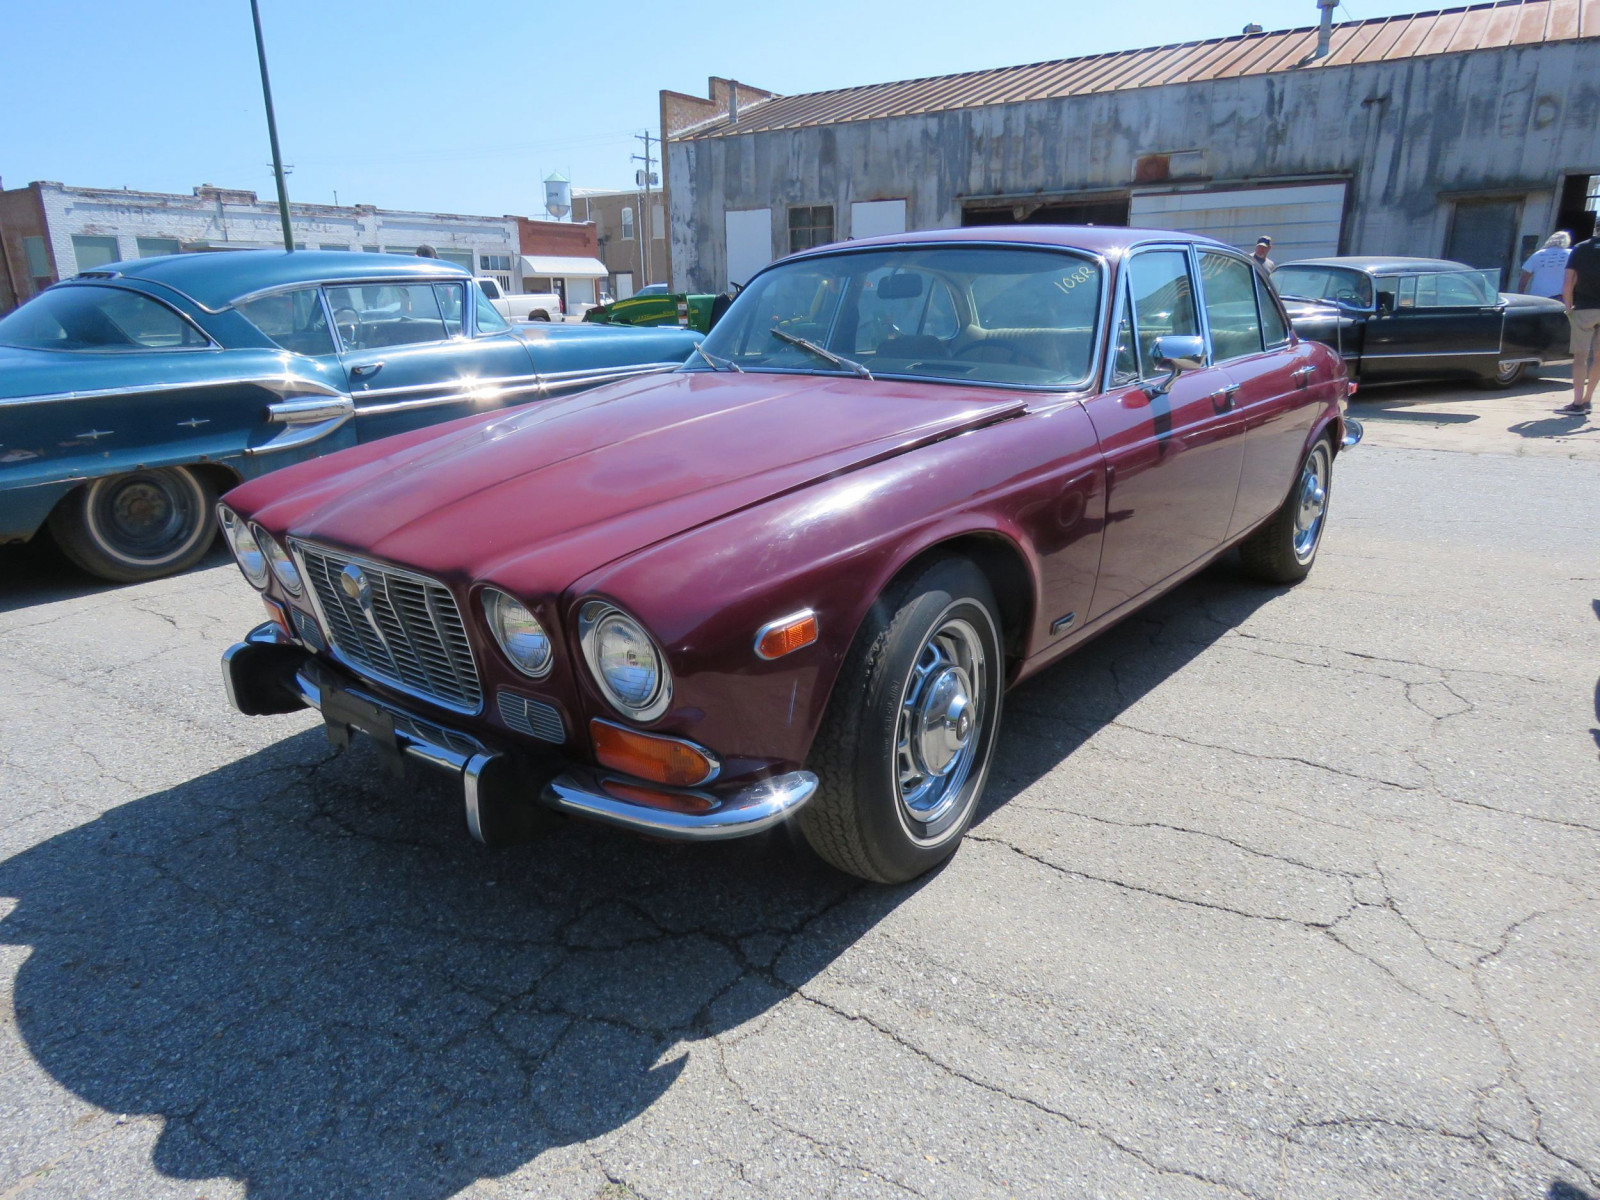 1973 JAGUAR XJ6 4DR SEDAN - Image 1